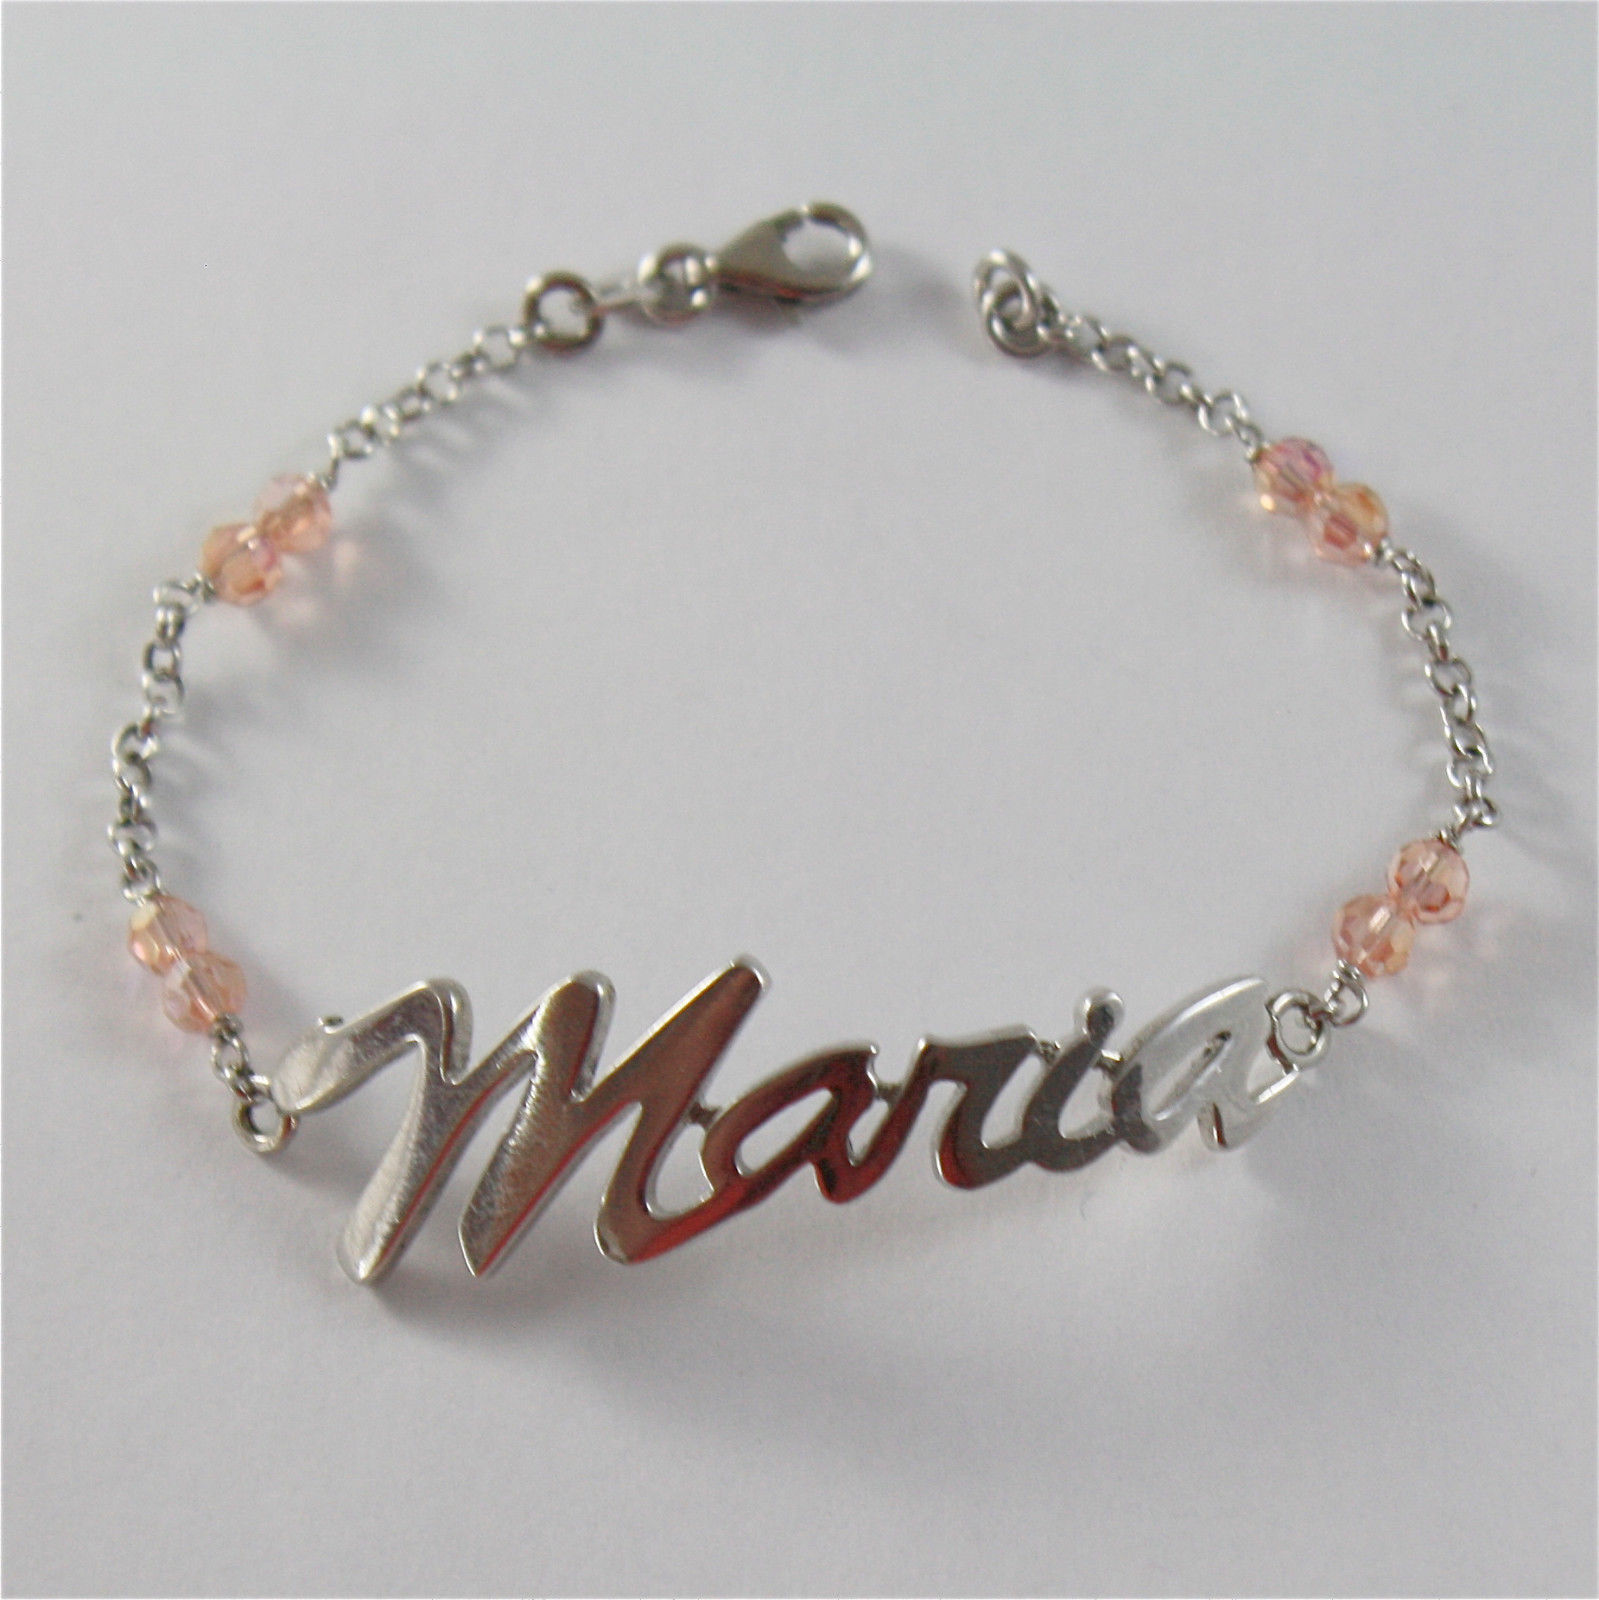 925 SILVER BRACELET WITH NAME MARIA AND CUBIC ZIRCONIA MADE IN ITALY 79,00 USD